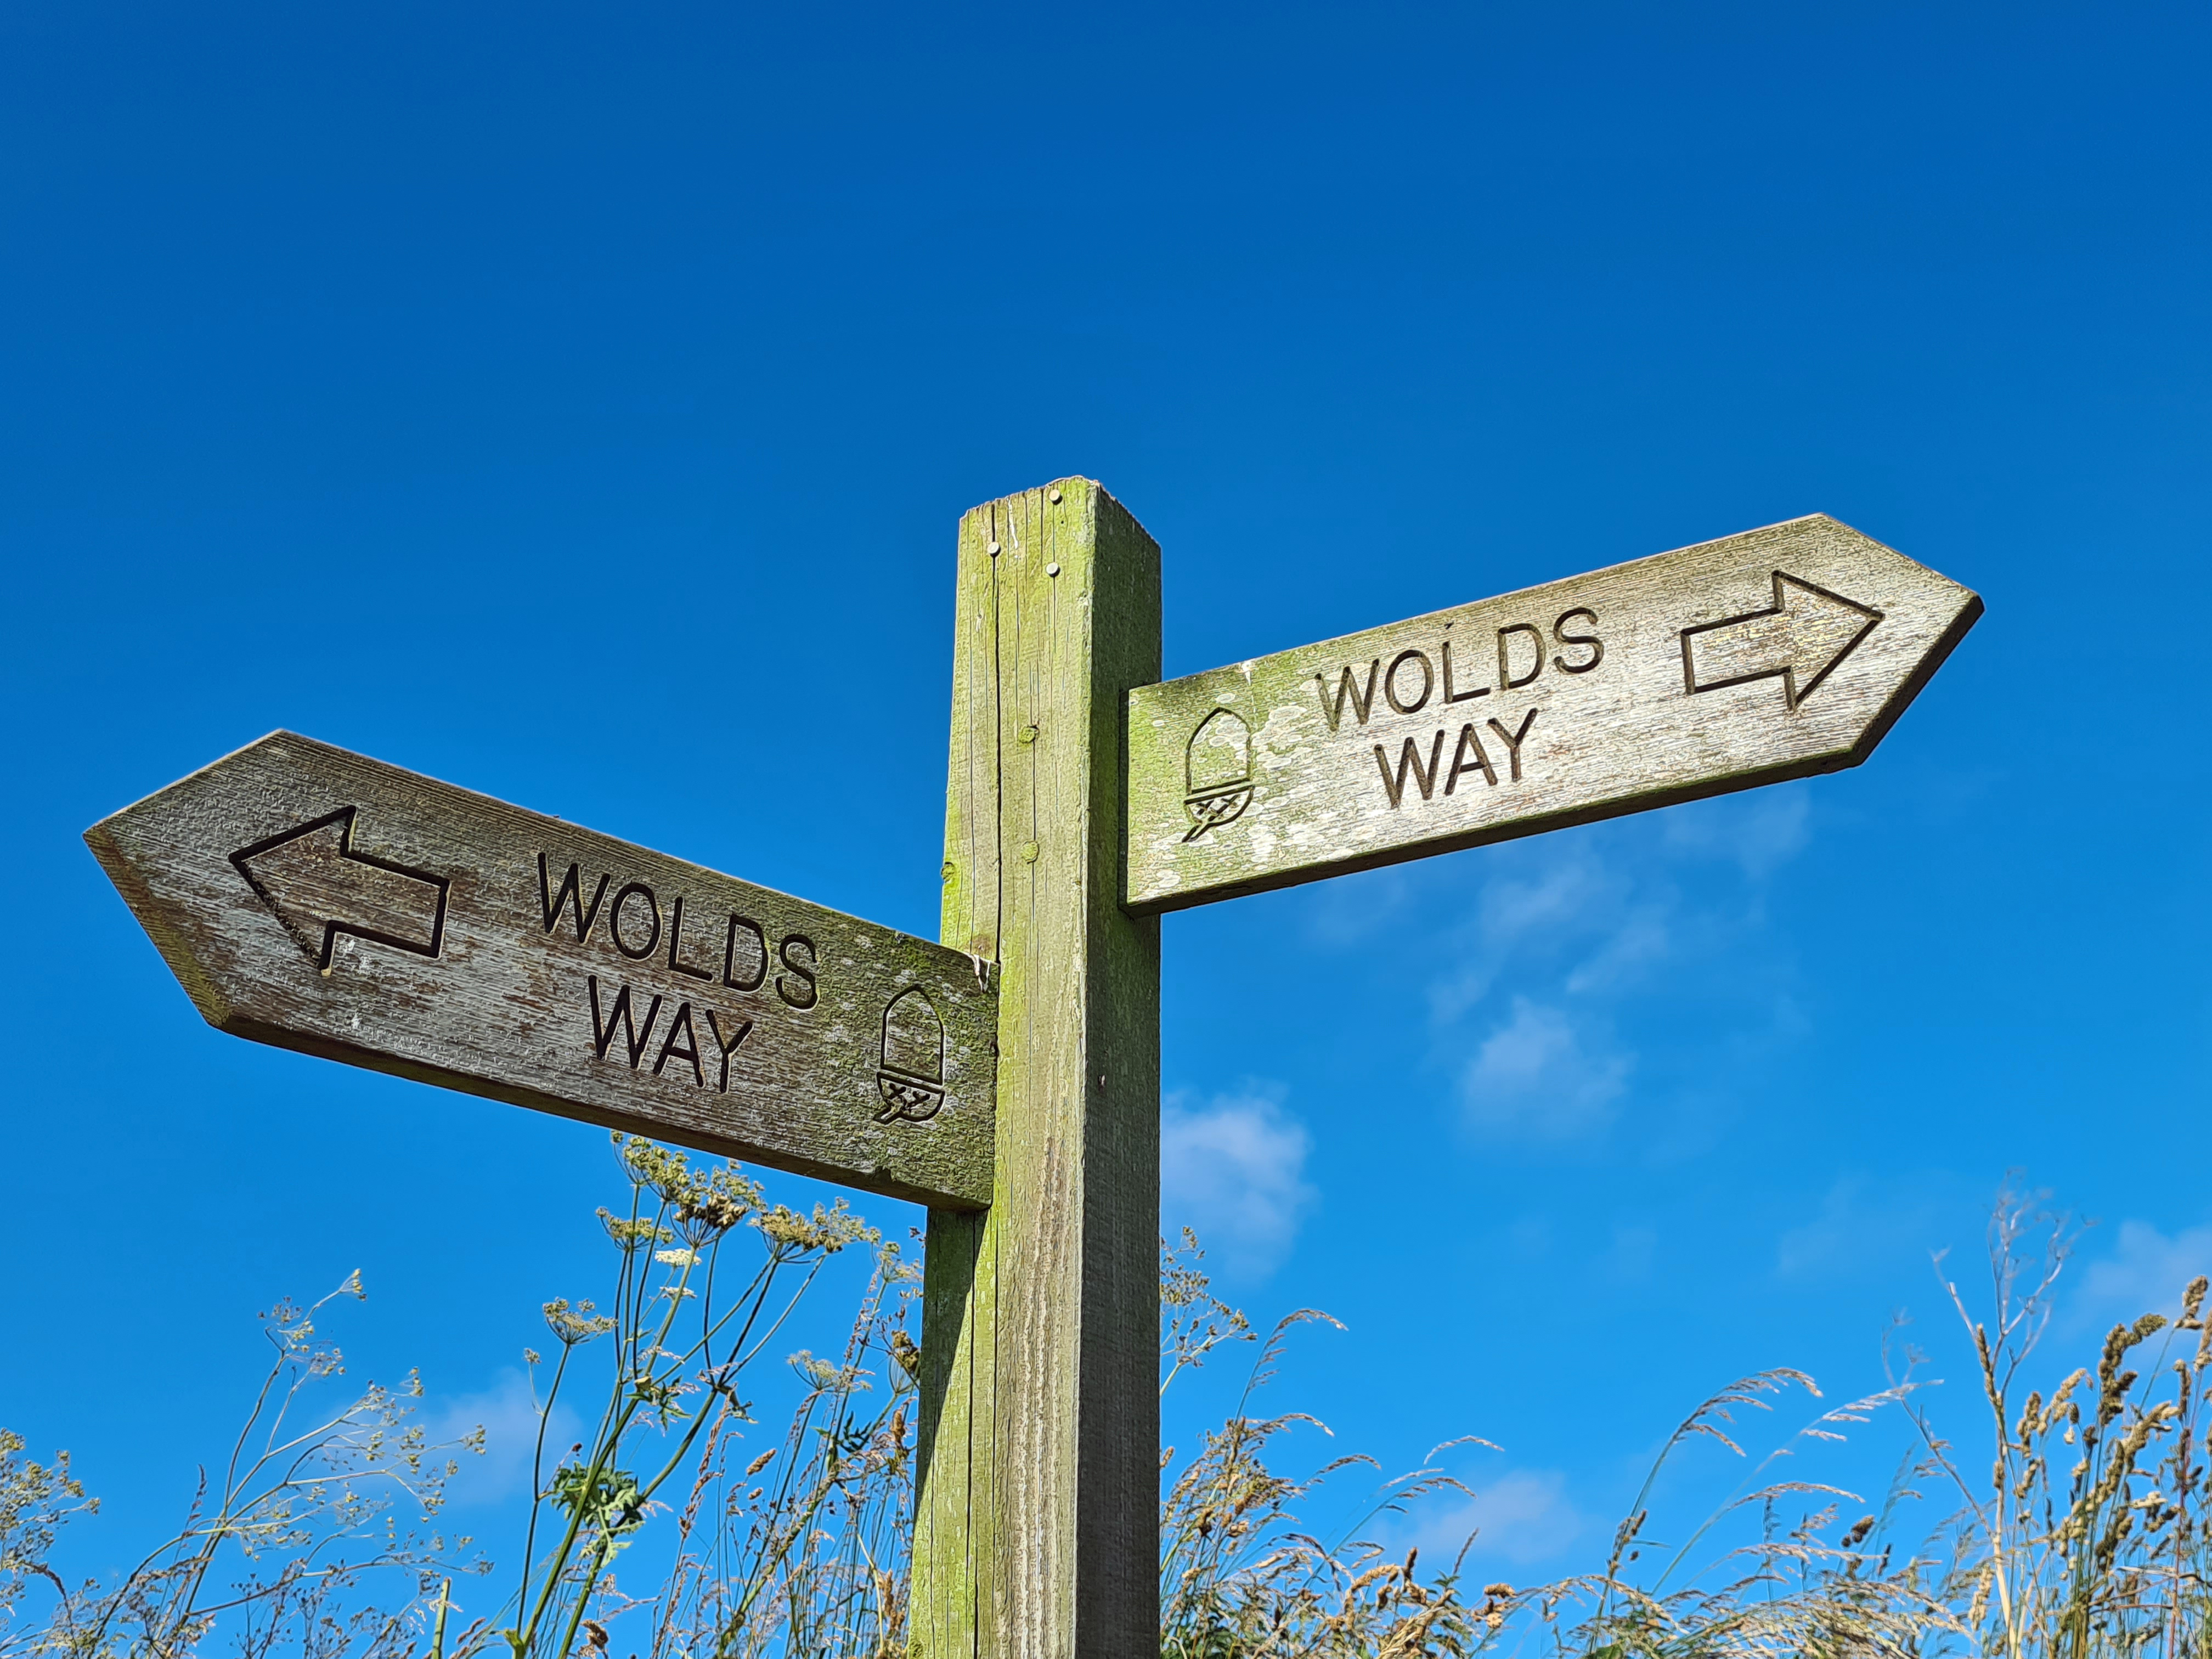 Yorkshire Wolds Way signage